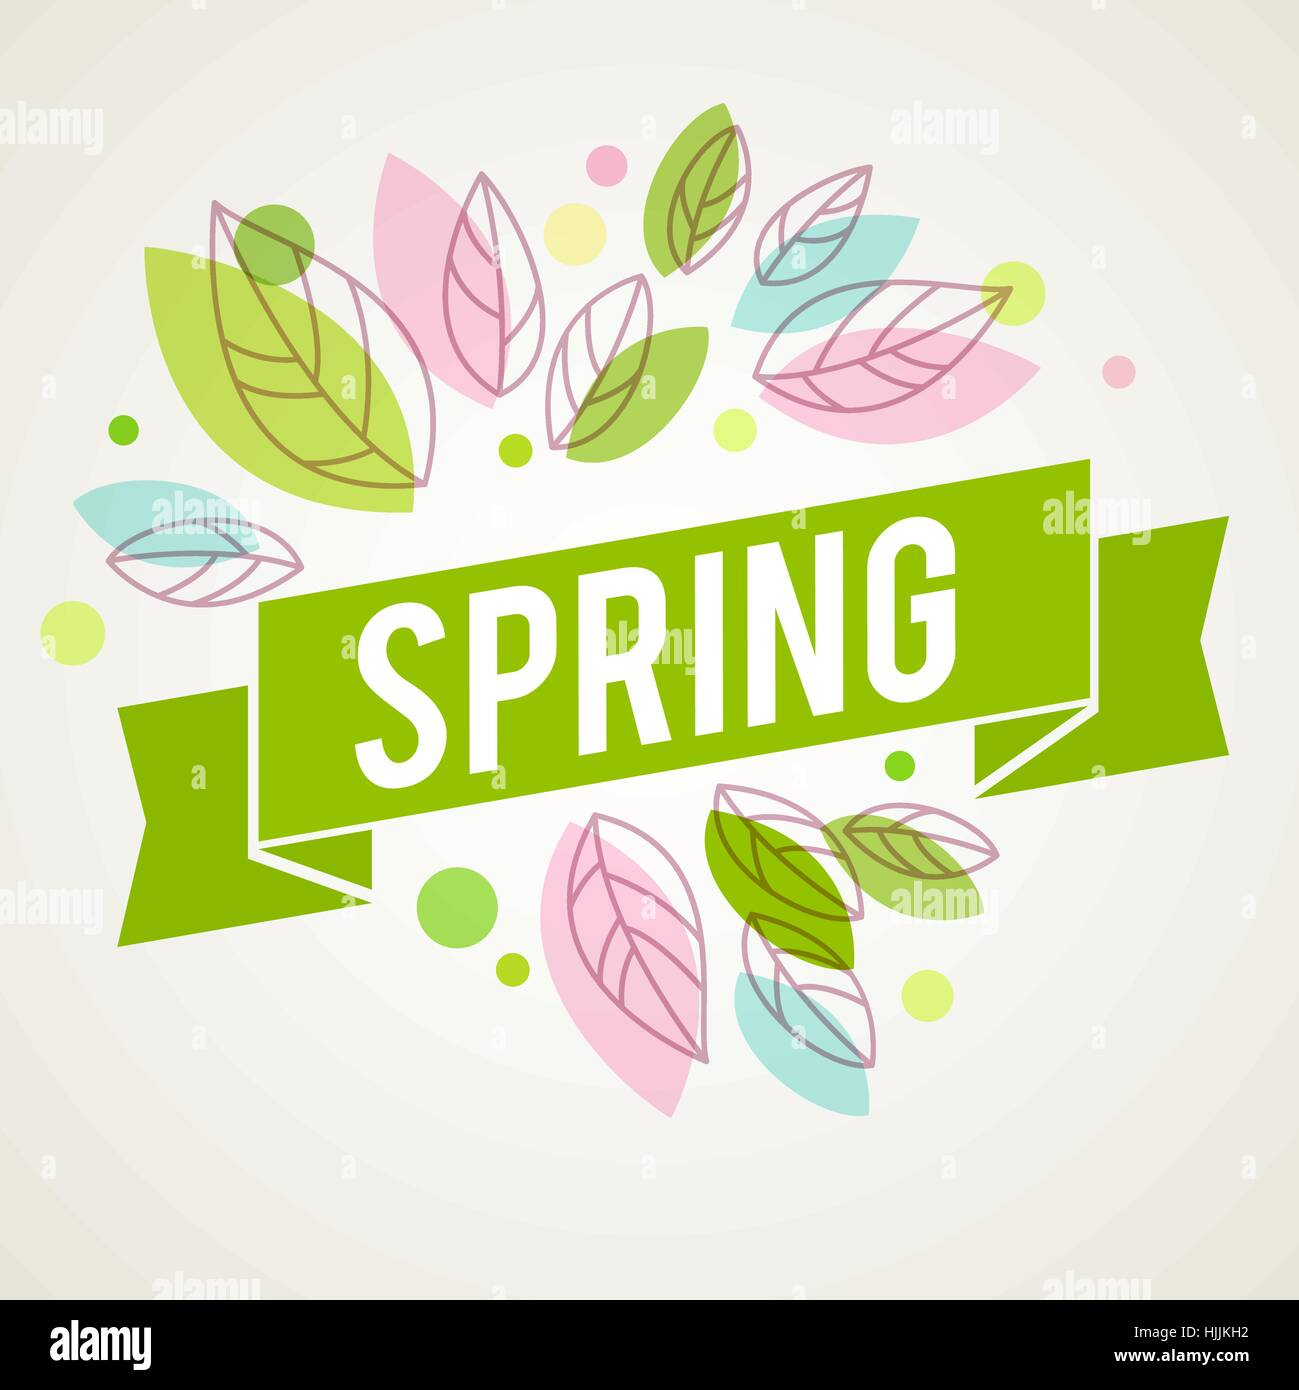 Fresh vector design for banners greeting cards spring sales fresh vector design for banners greeting cards spring sales leaves splash m4hsunfo